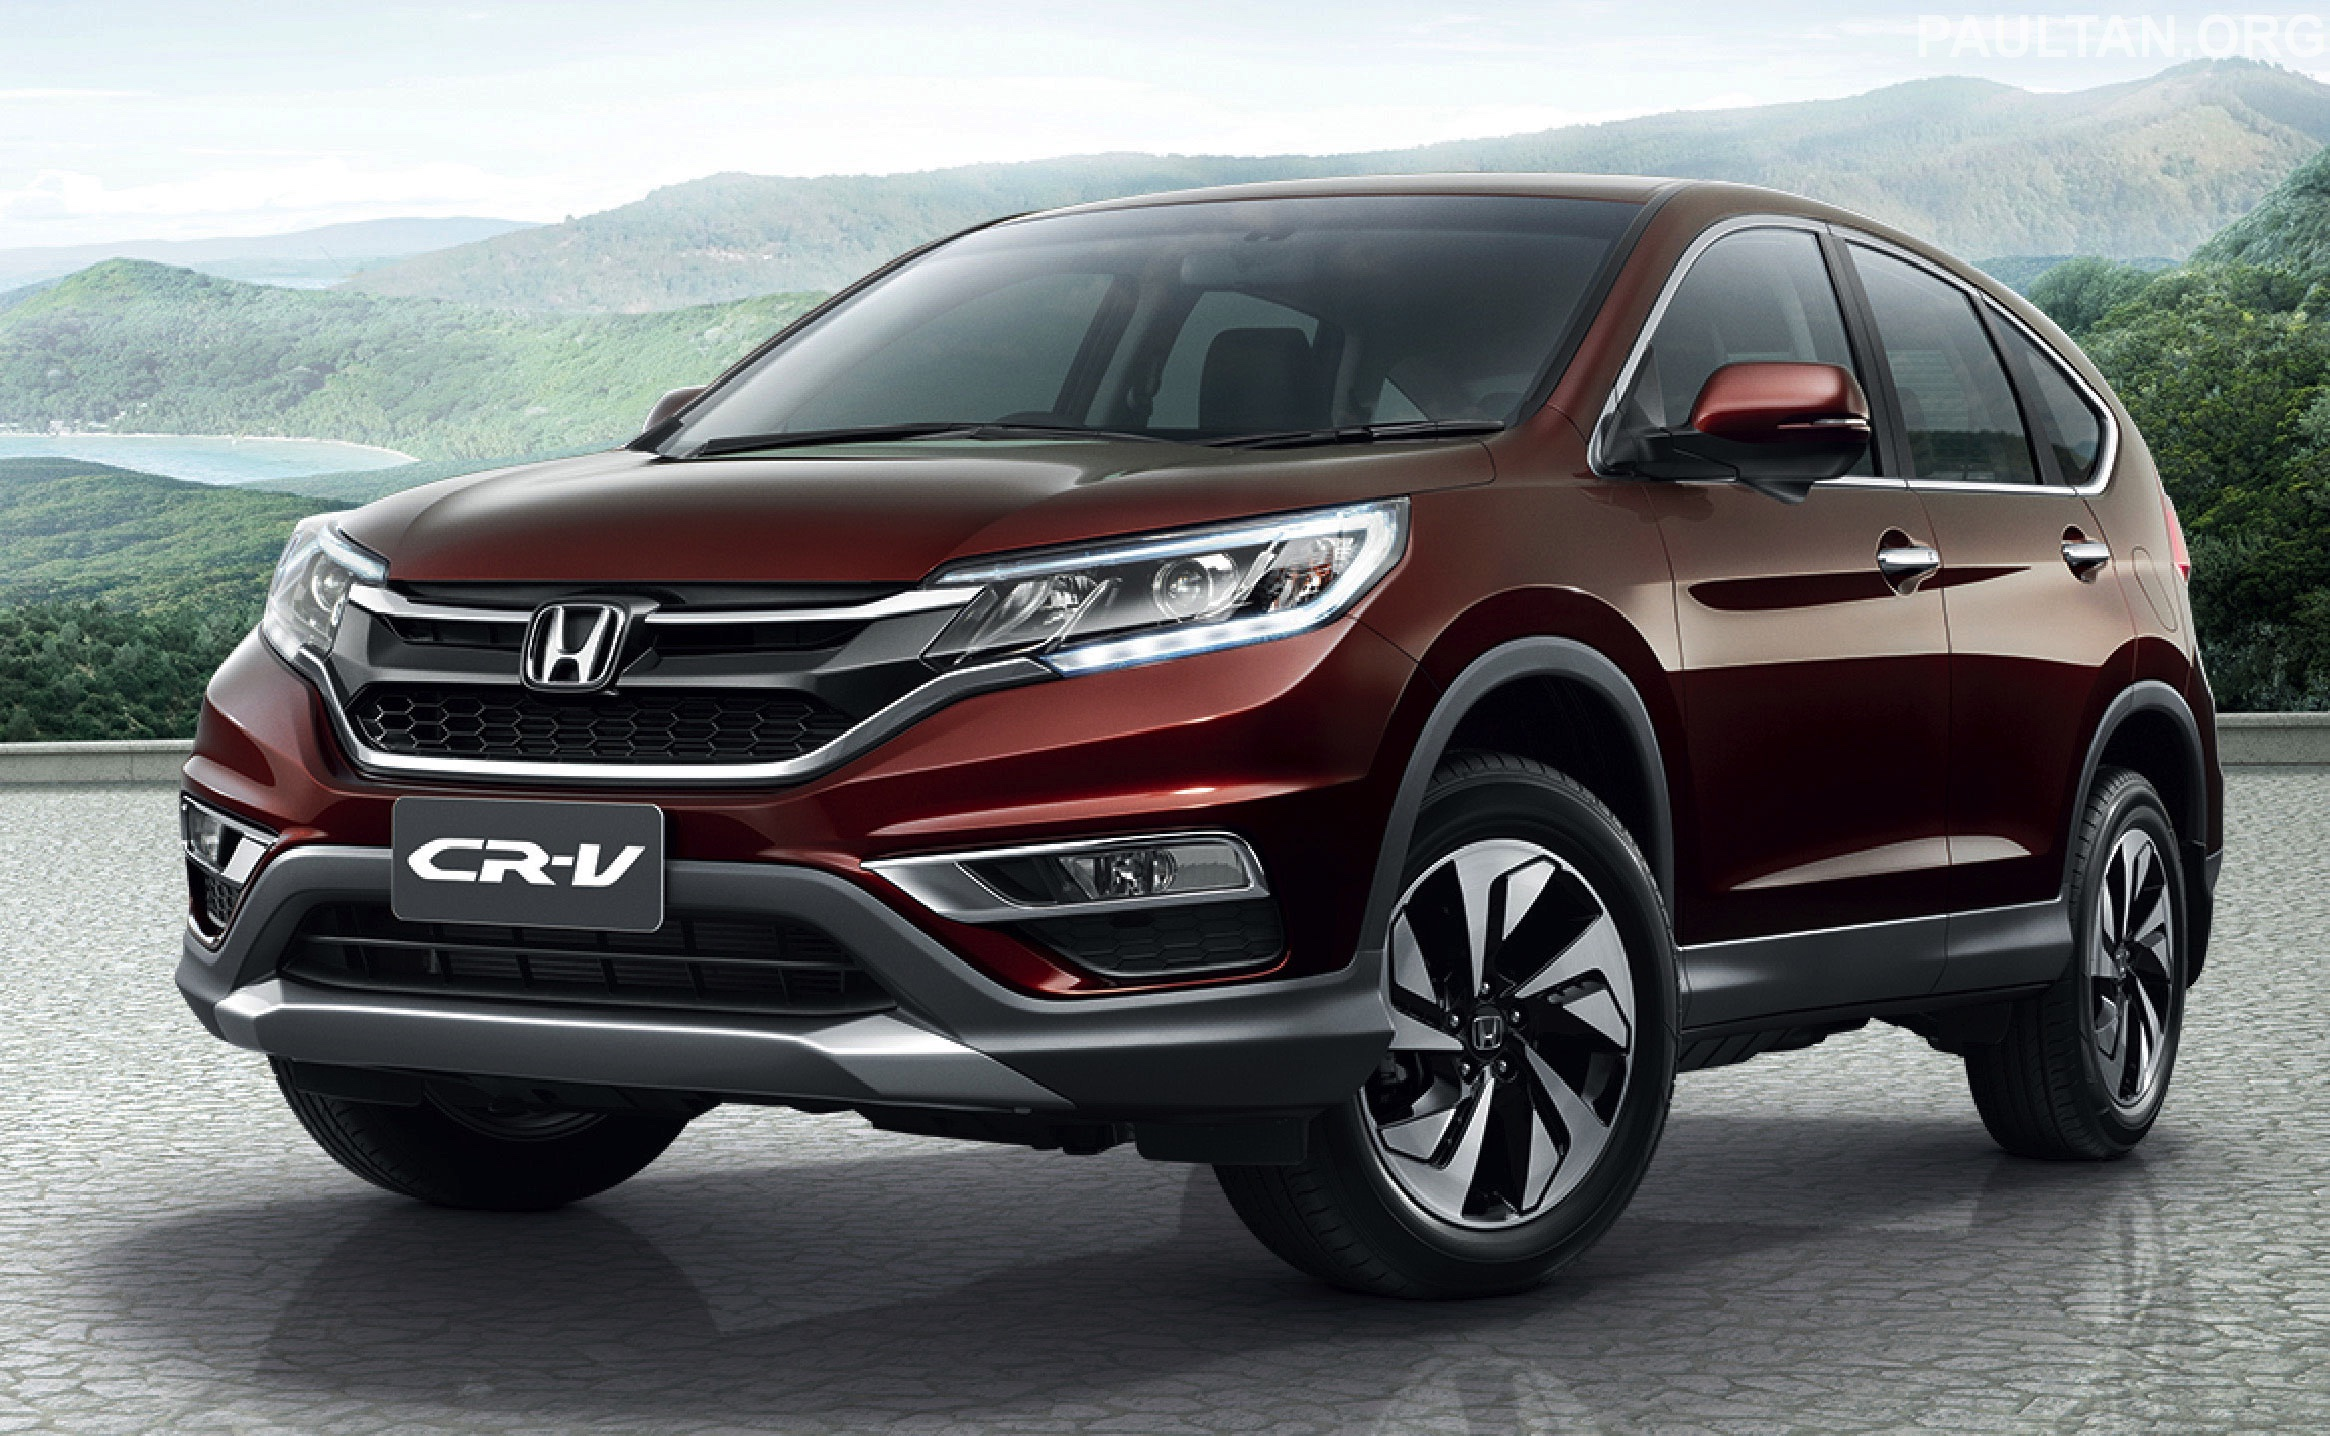 2015 honda cr v facelift asean version unveiled in thailand. Black Bedroom Furniture Sets. Home Design Ideas